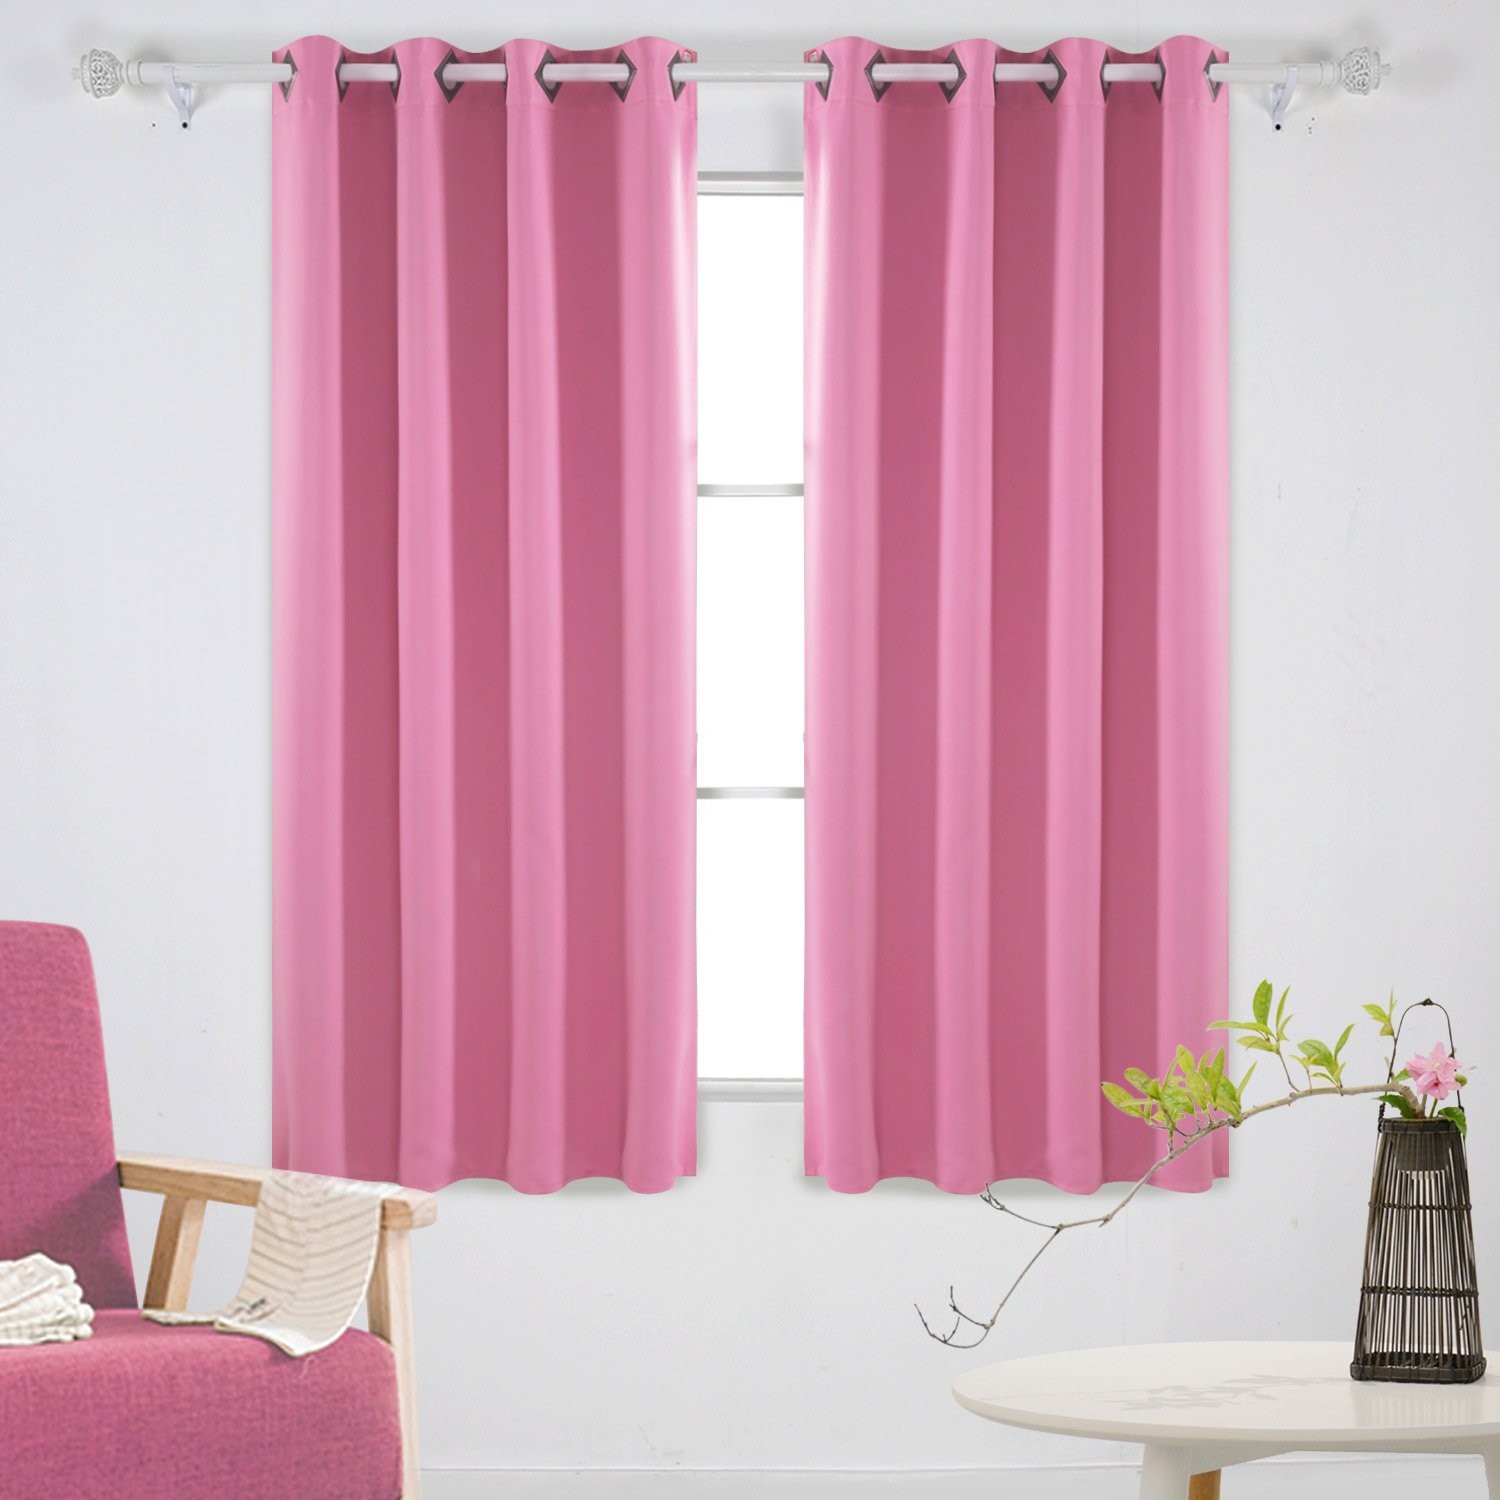 Image Result For Room Darkening Curtains Amazon